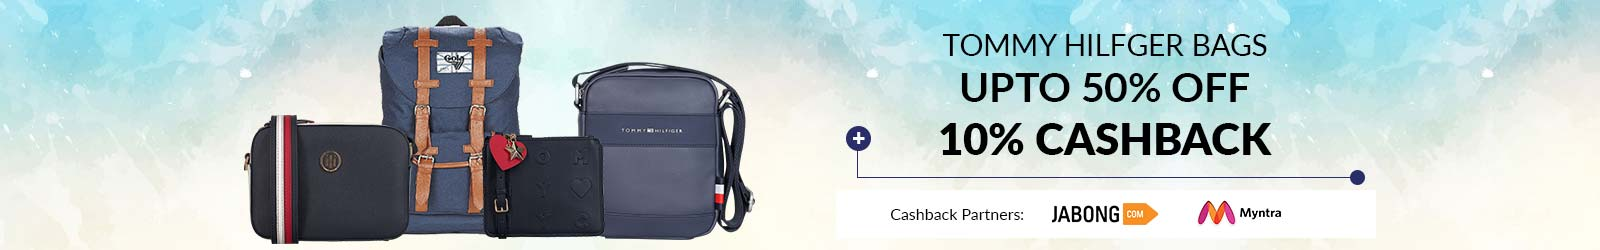 f776a3572 Tommy Hilfiger Bags Price List India, Offers: 50% Discount + 10% Cashback,  2019